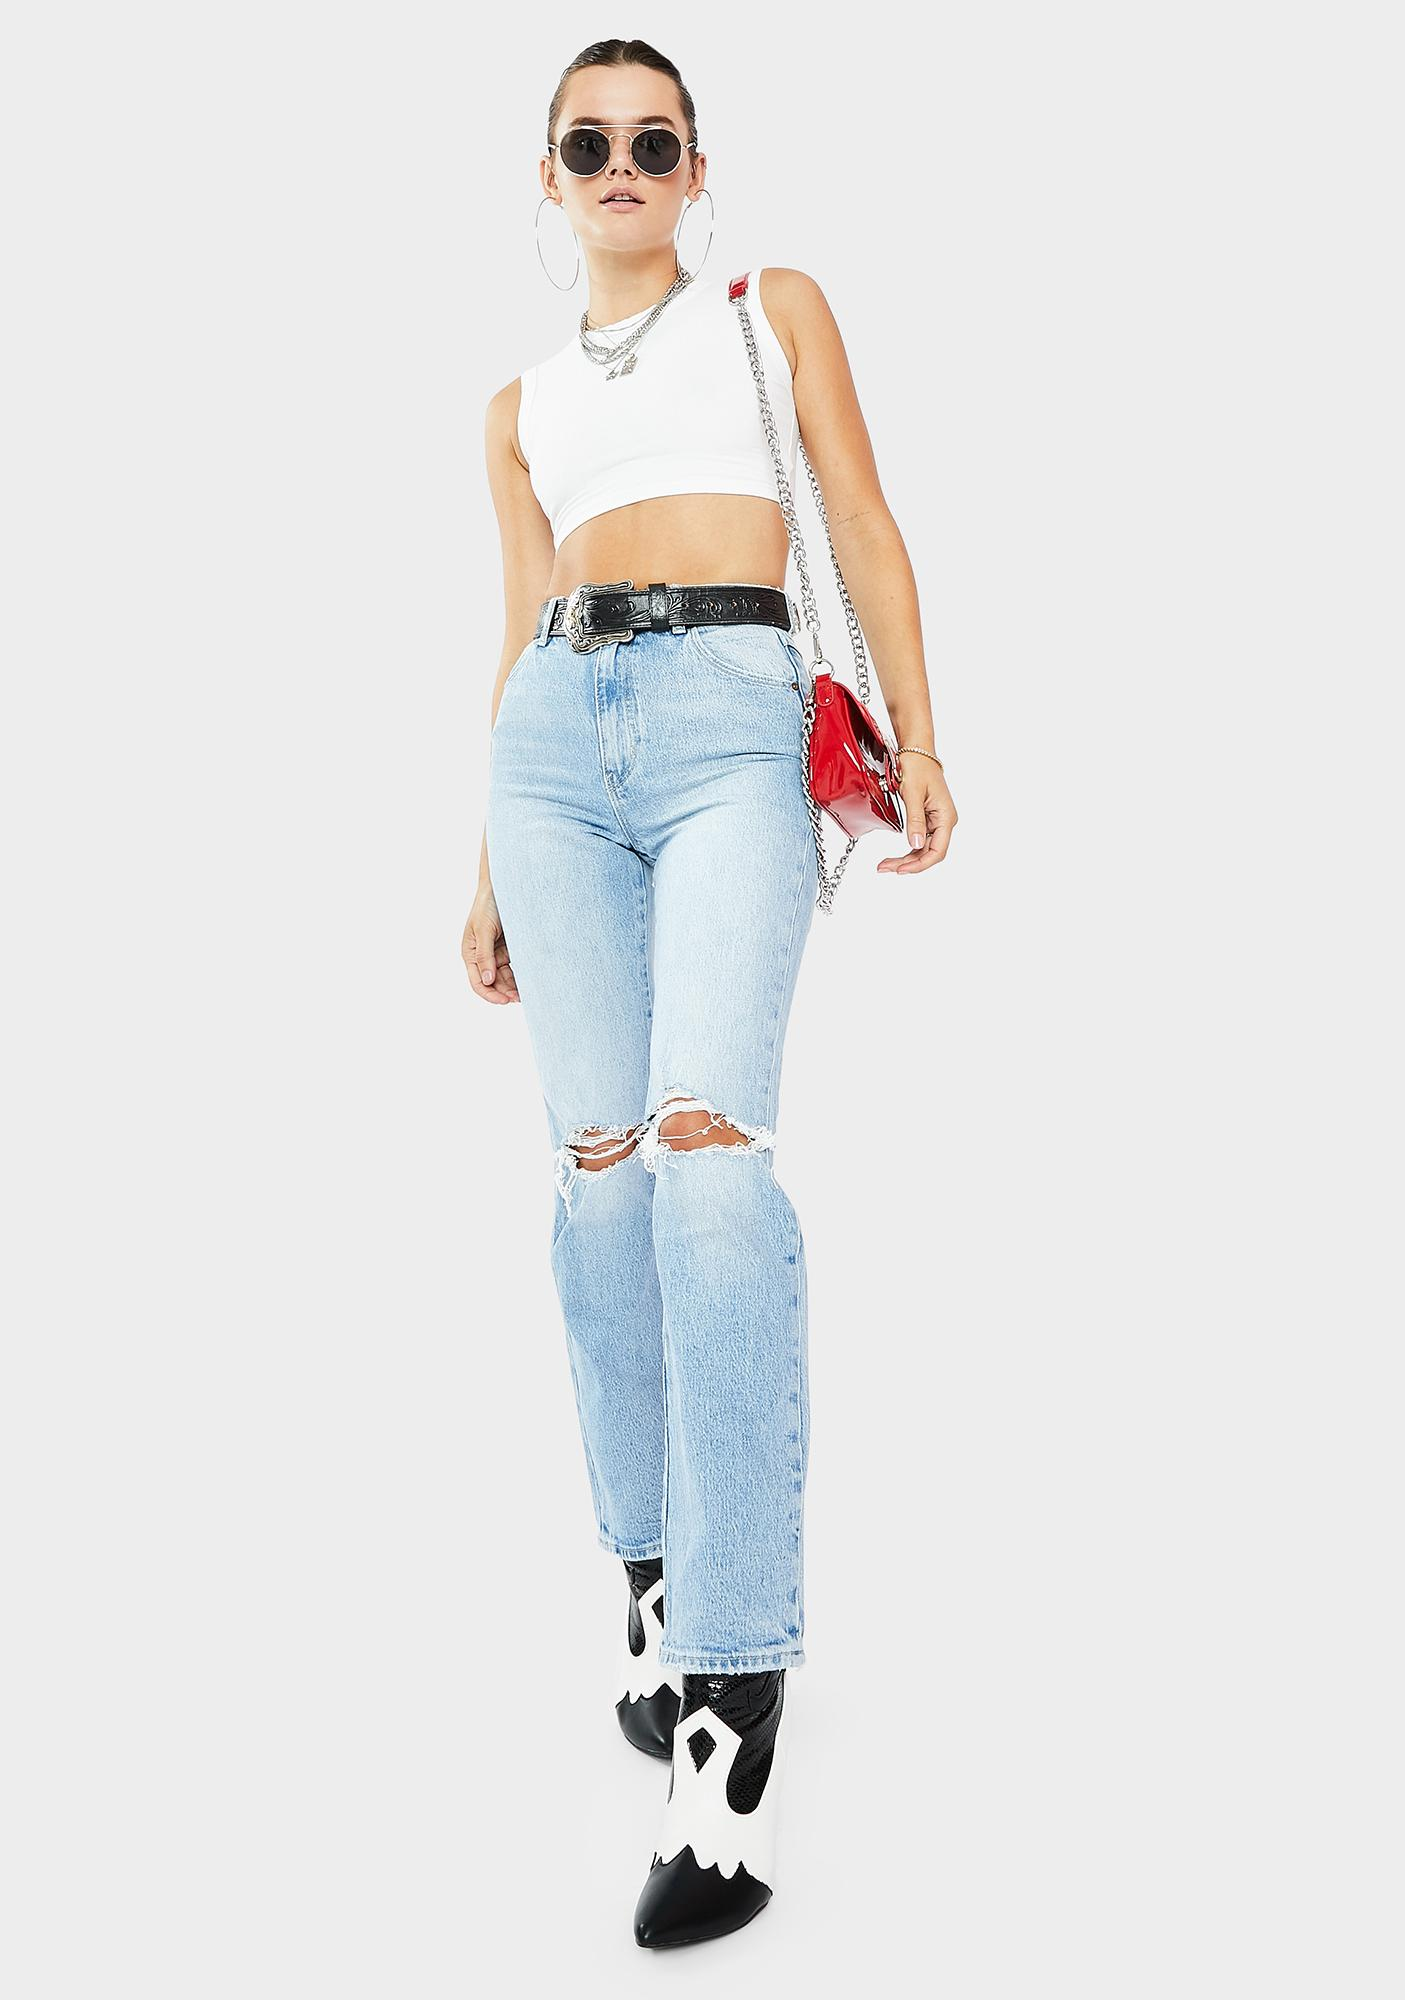 Rollas Duster Ripped Denim Jeans